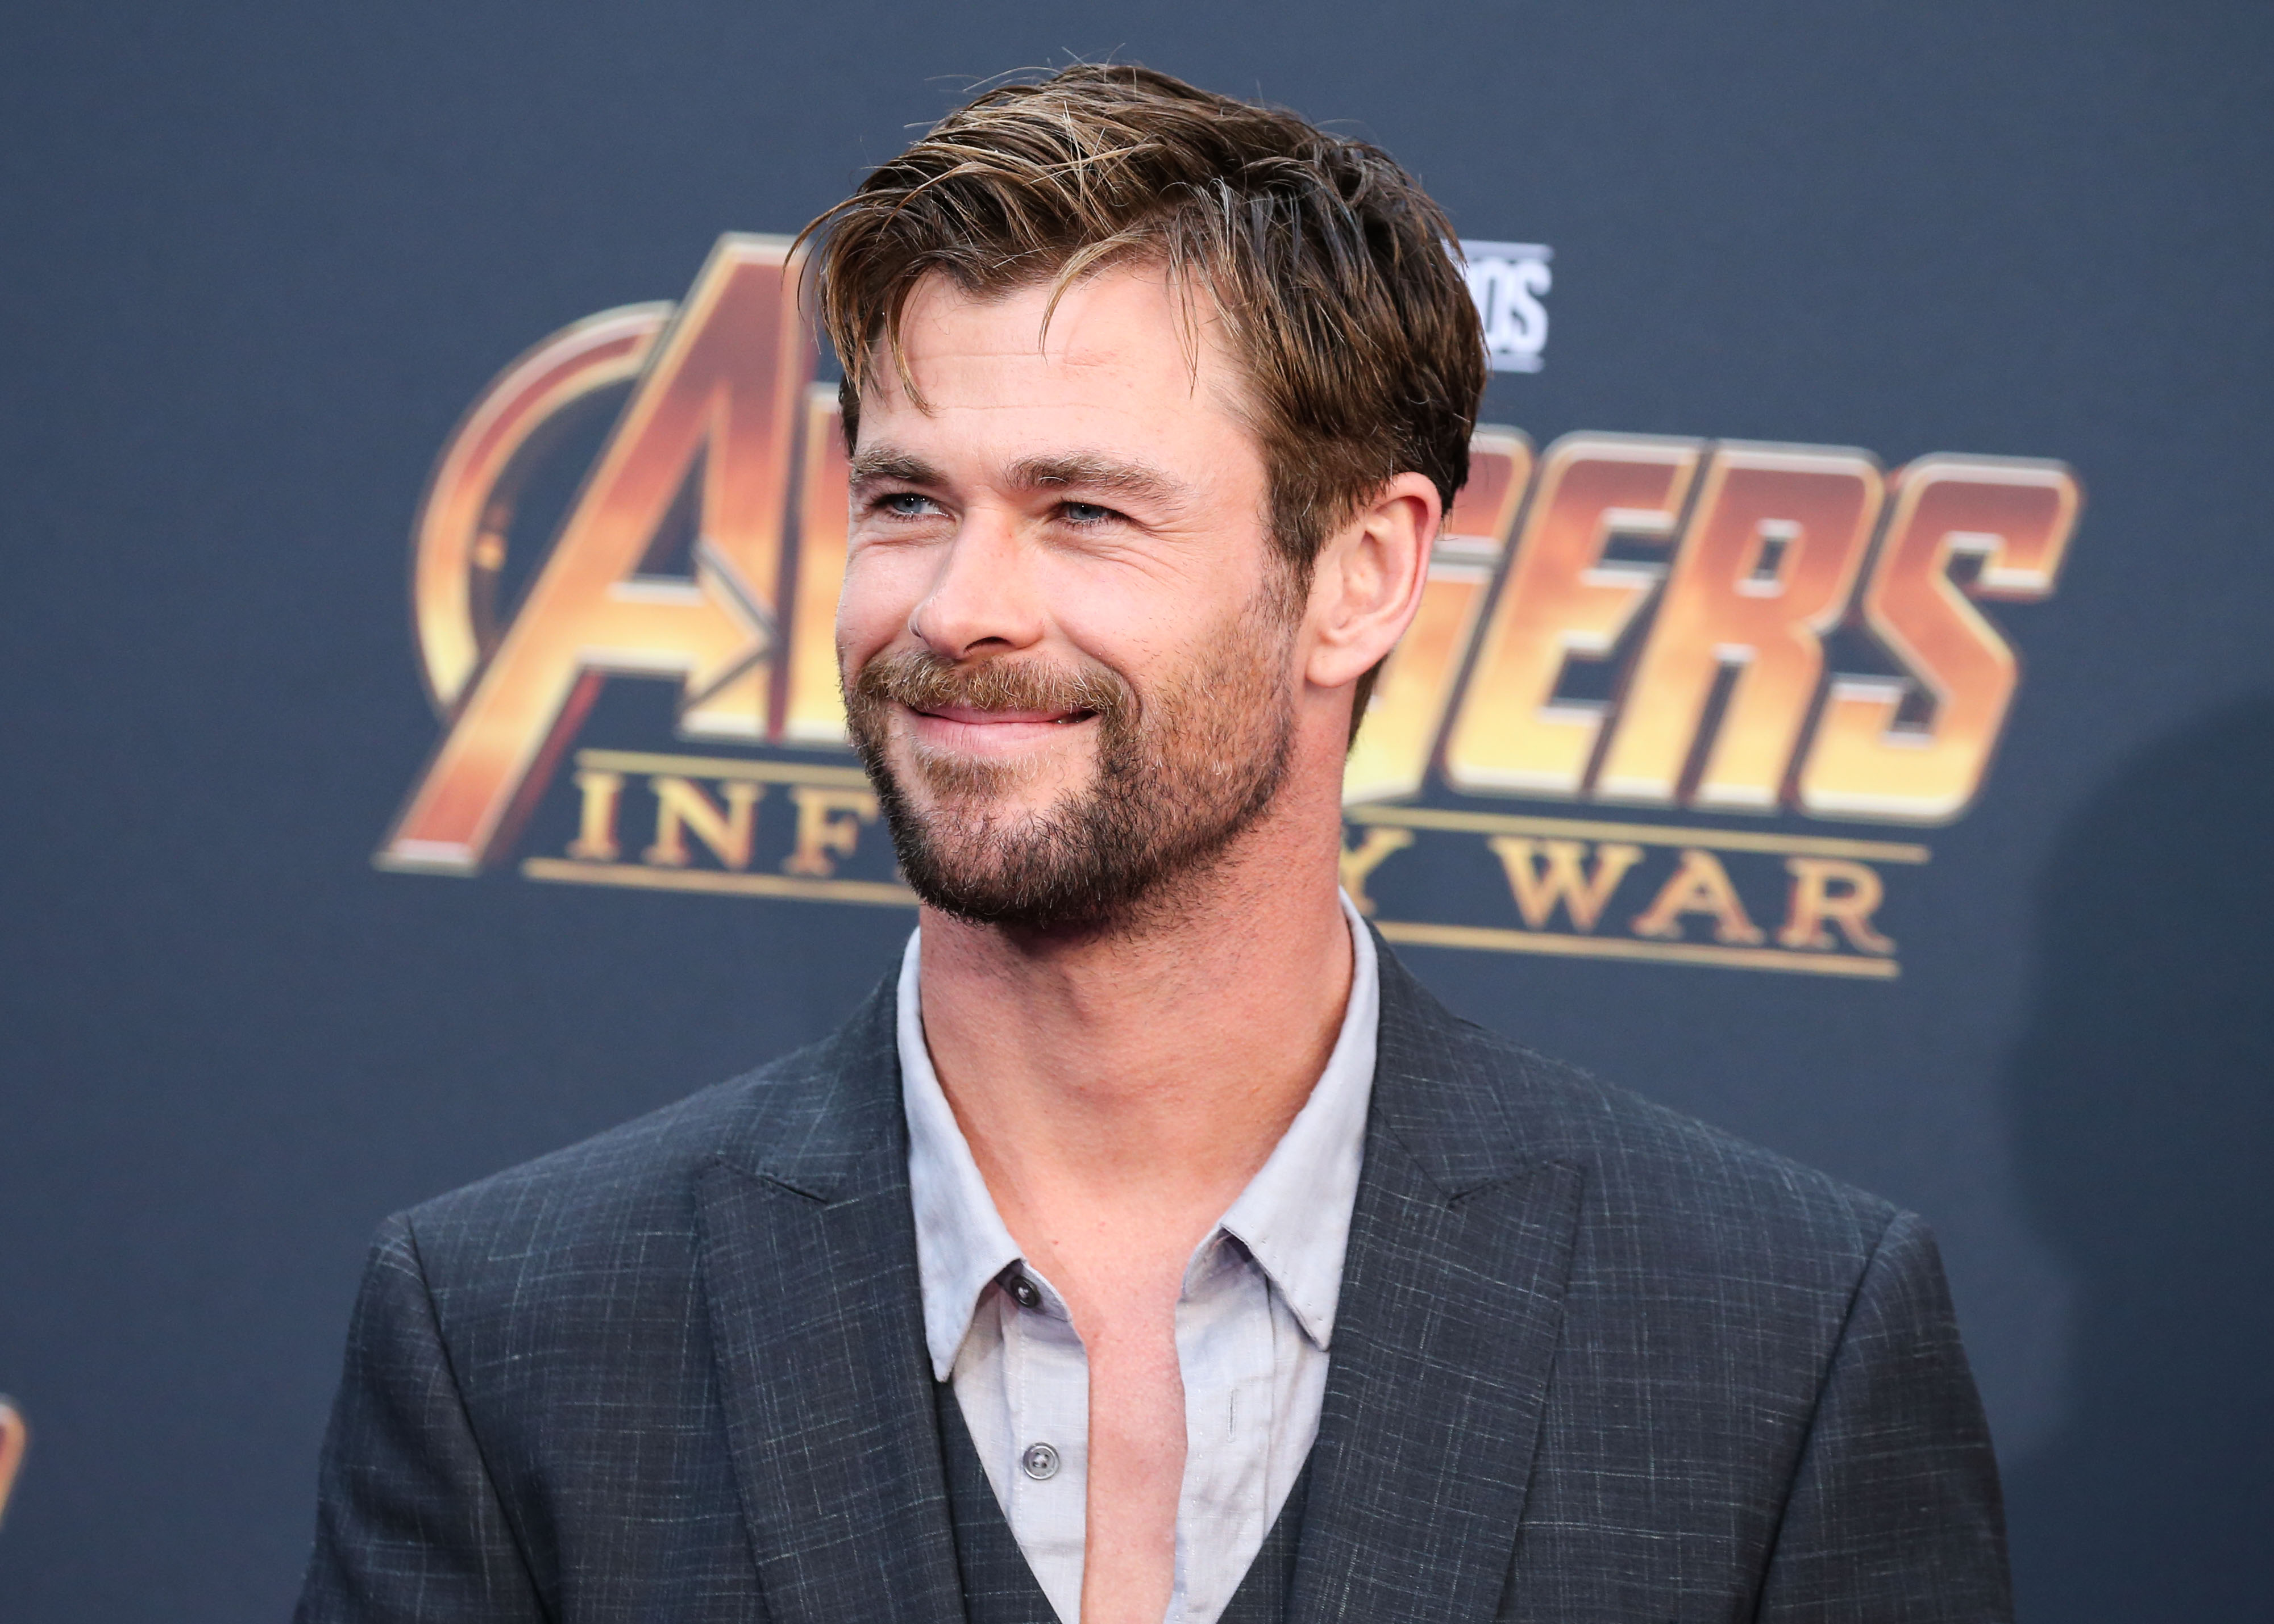 Chris Hemsworth photo #845816